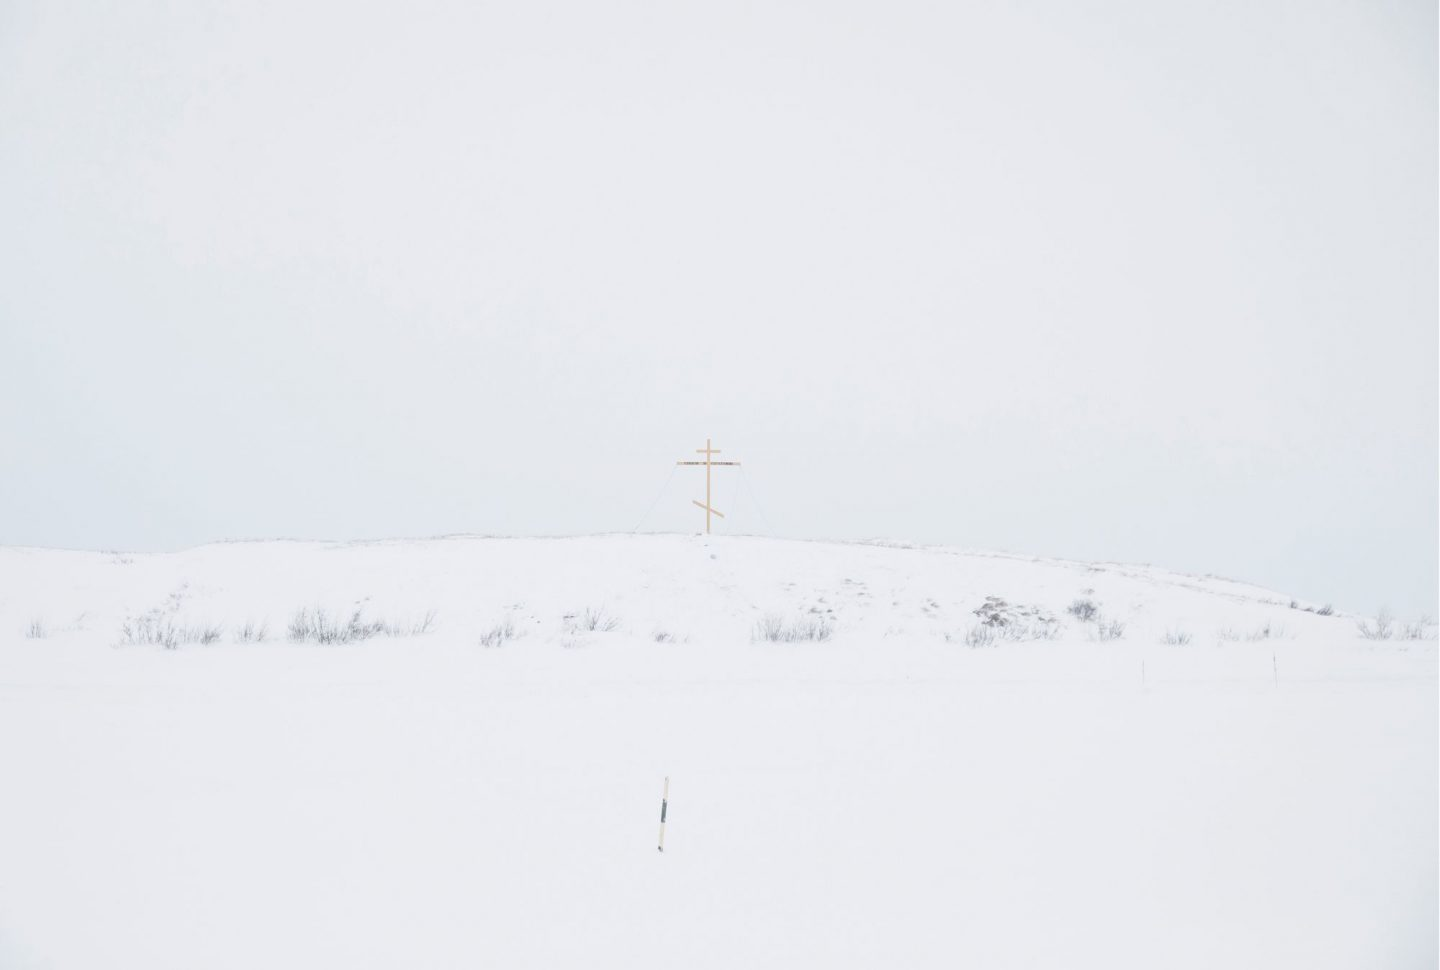 IGNANT-Photography-Oded-Wagenstein-Last-Years-Snow-15